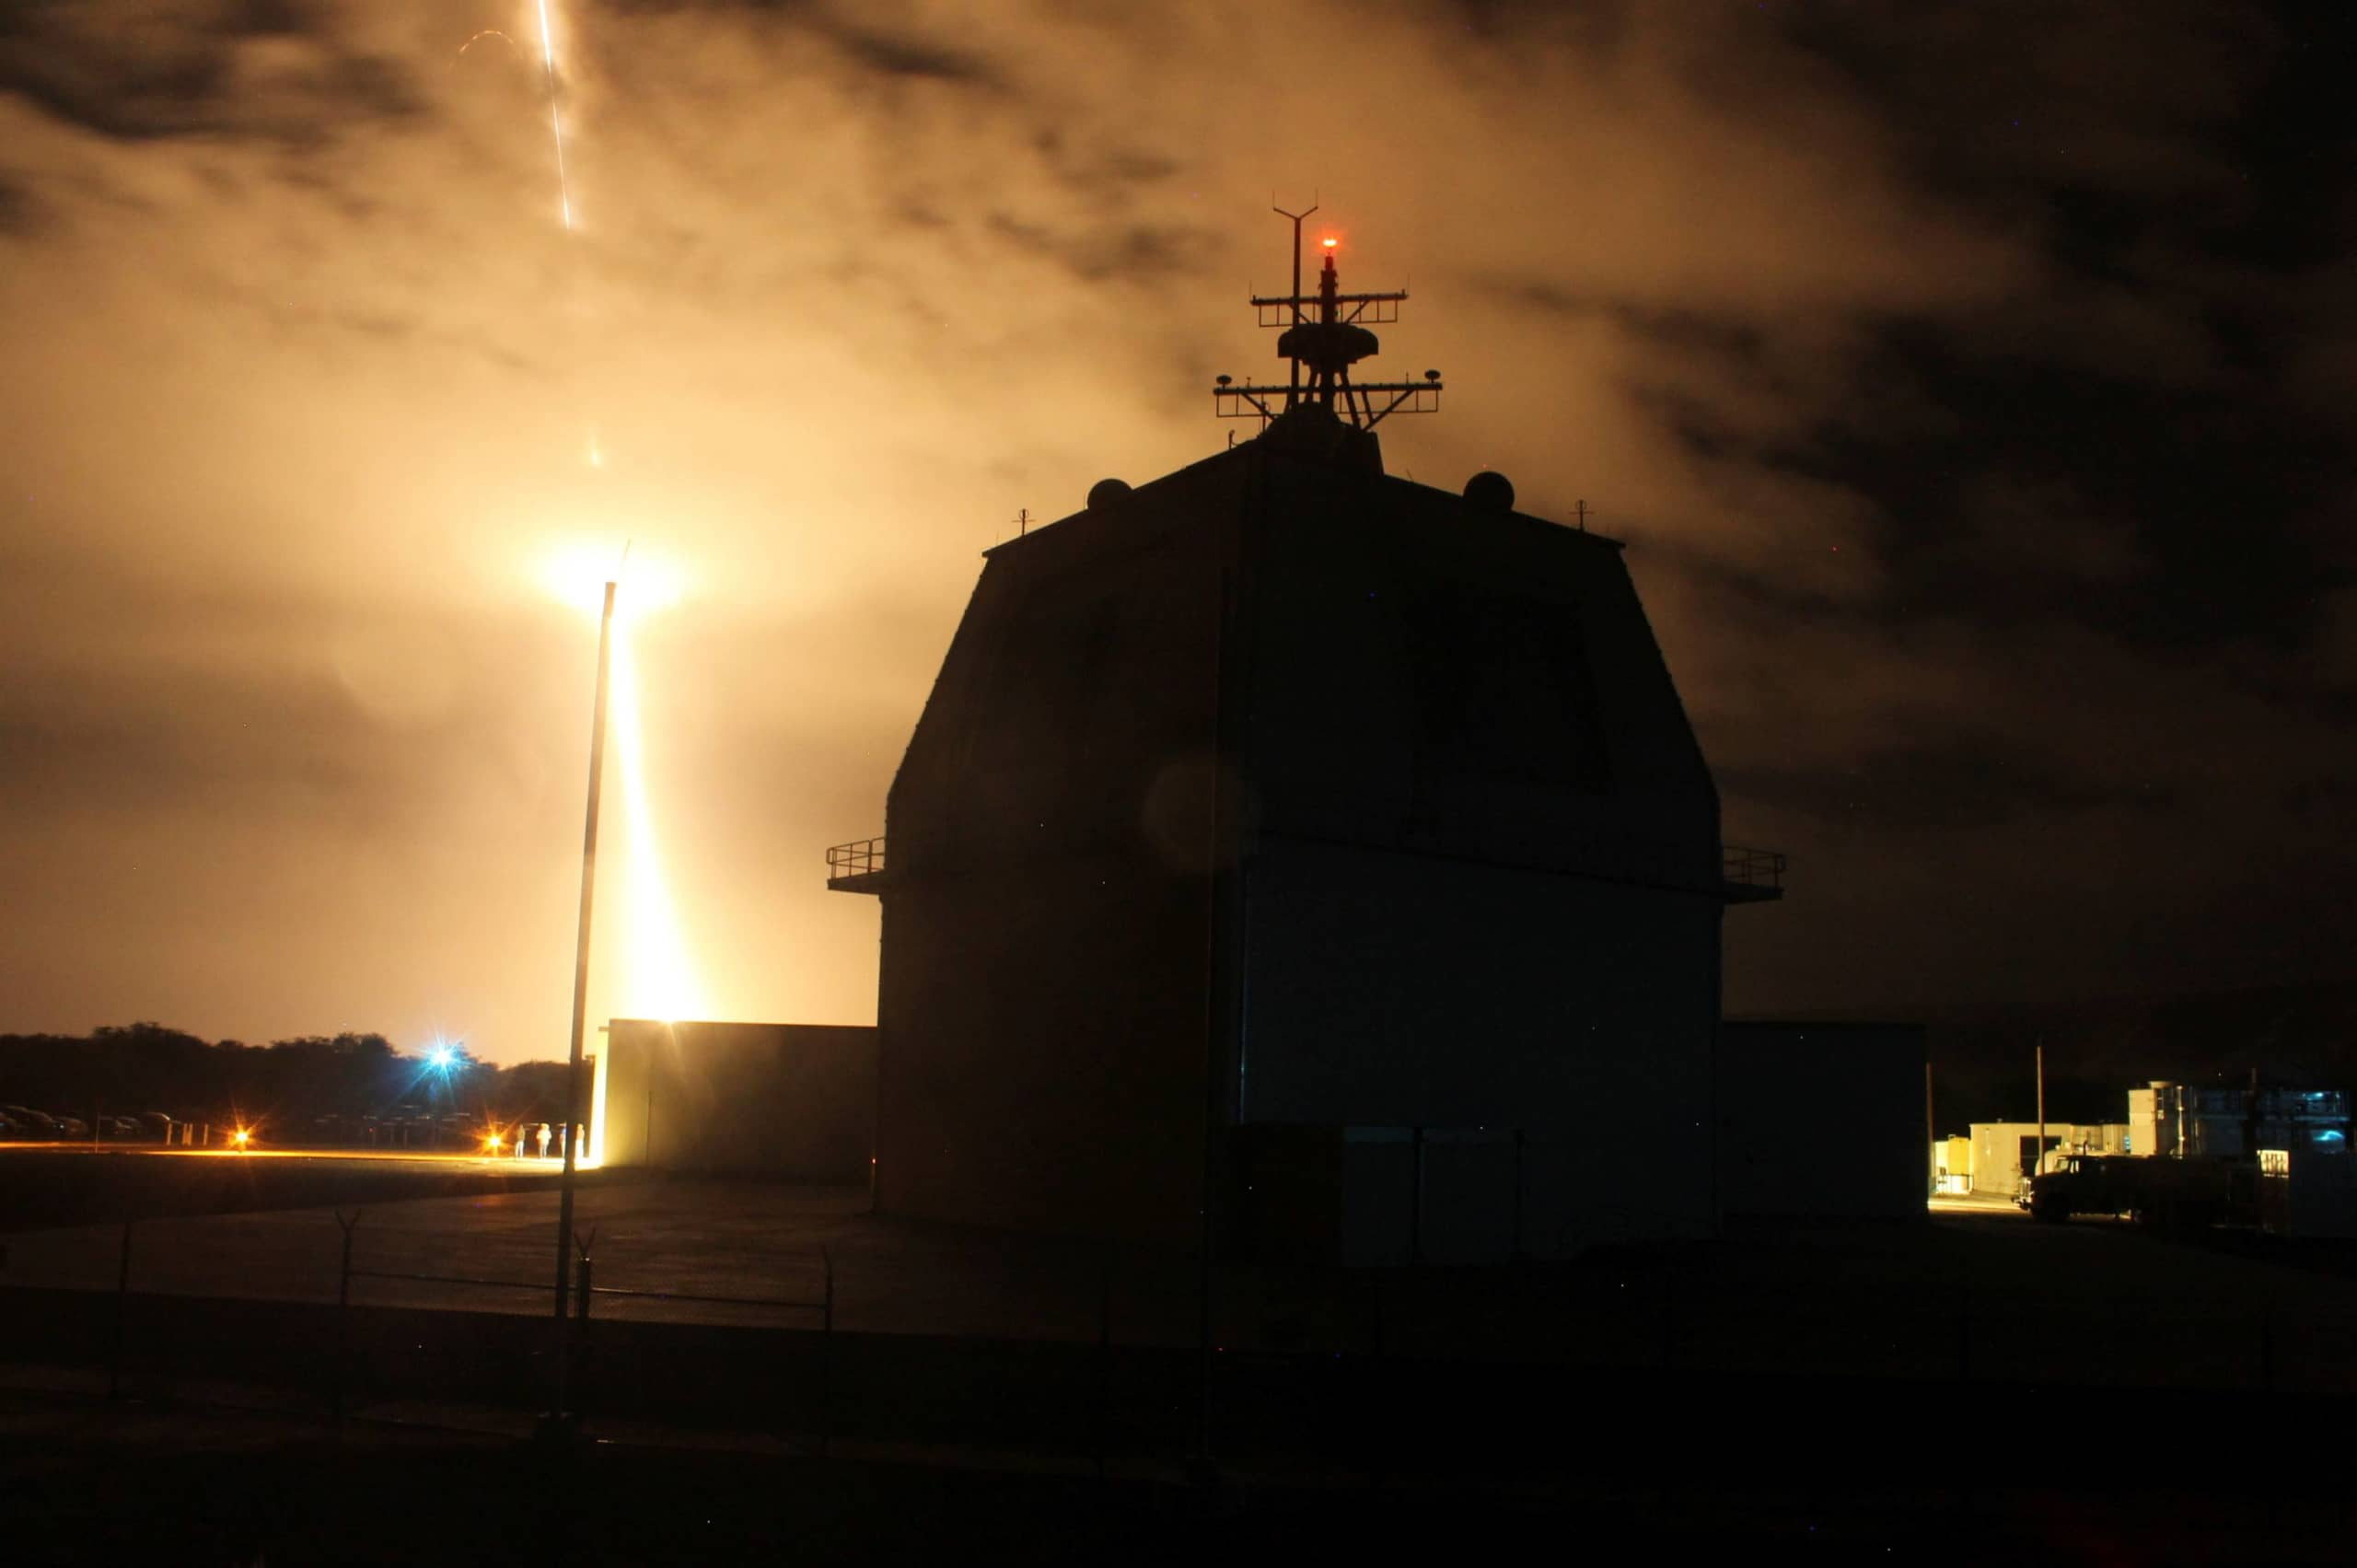 Raytheon is lobbying lawmakers in Japan to replace Lockheed Martin Corp. as the supplier for powerful new radar systems, as Tokyo reconsiders plans for two Aegis Ashore missile defense sites. | U.S. MISSILE DEFENSE AGENCY / VIA REUTERS